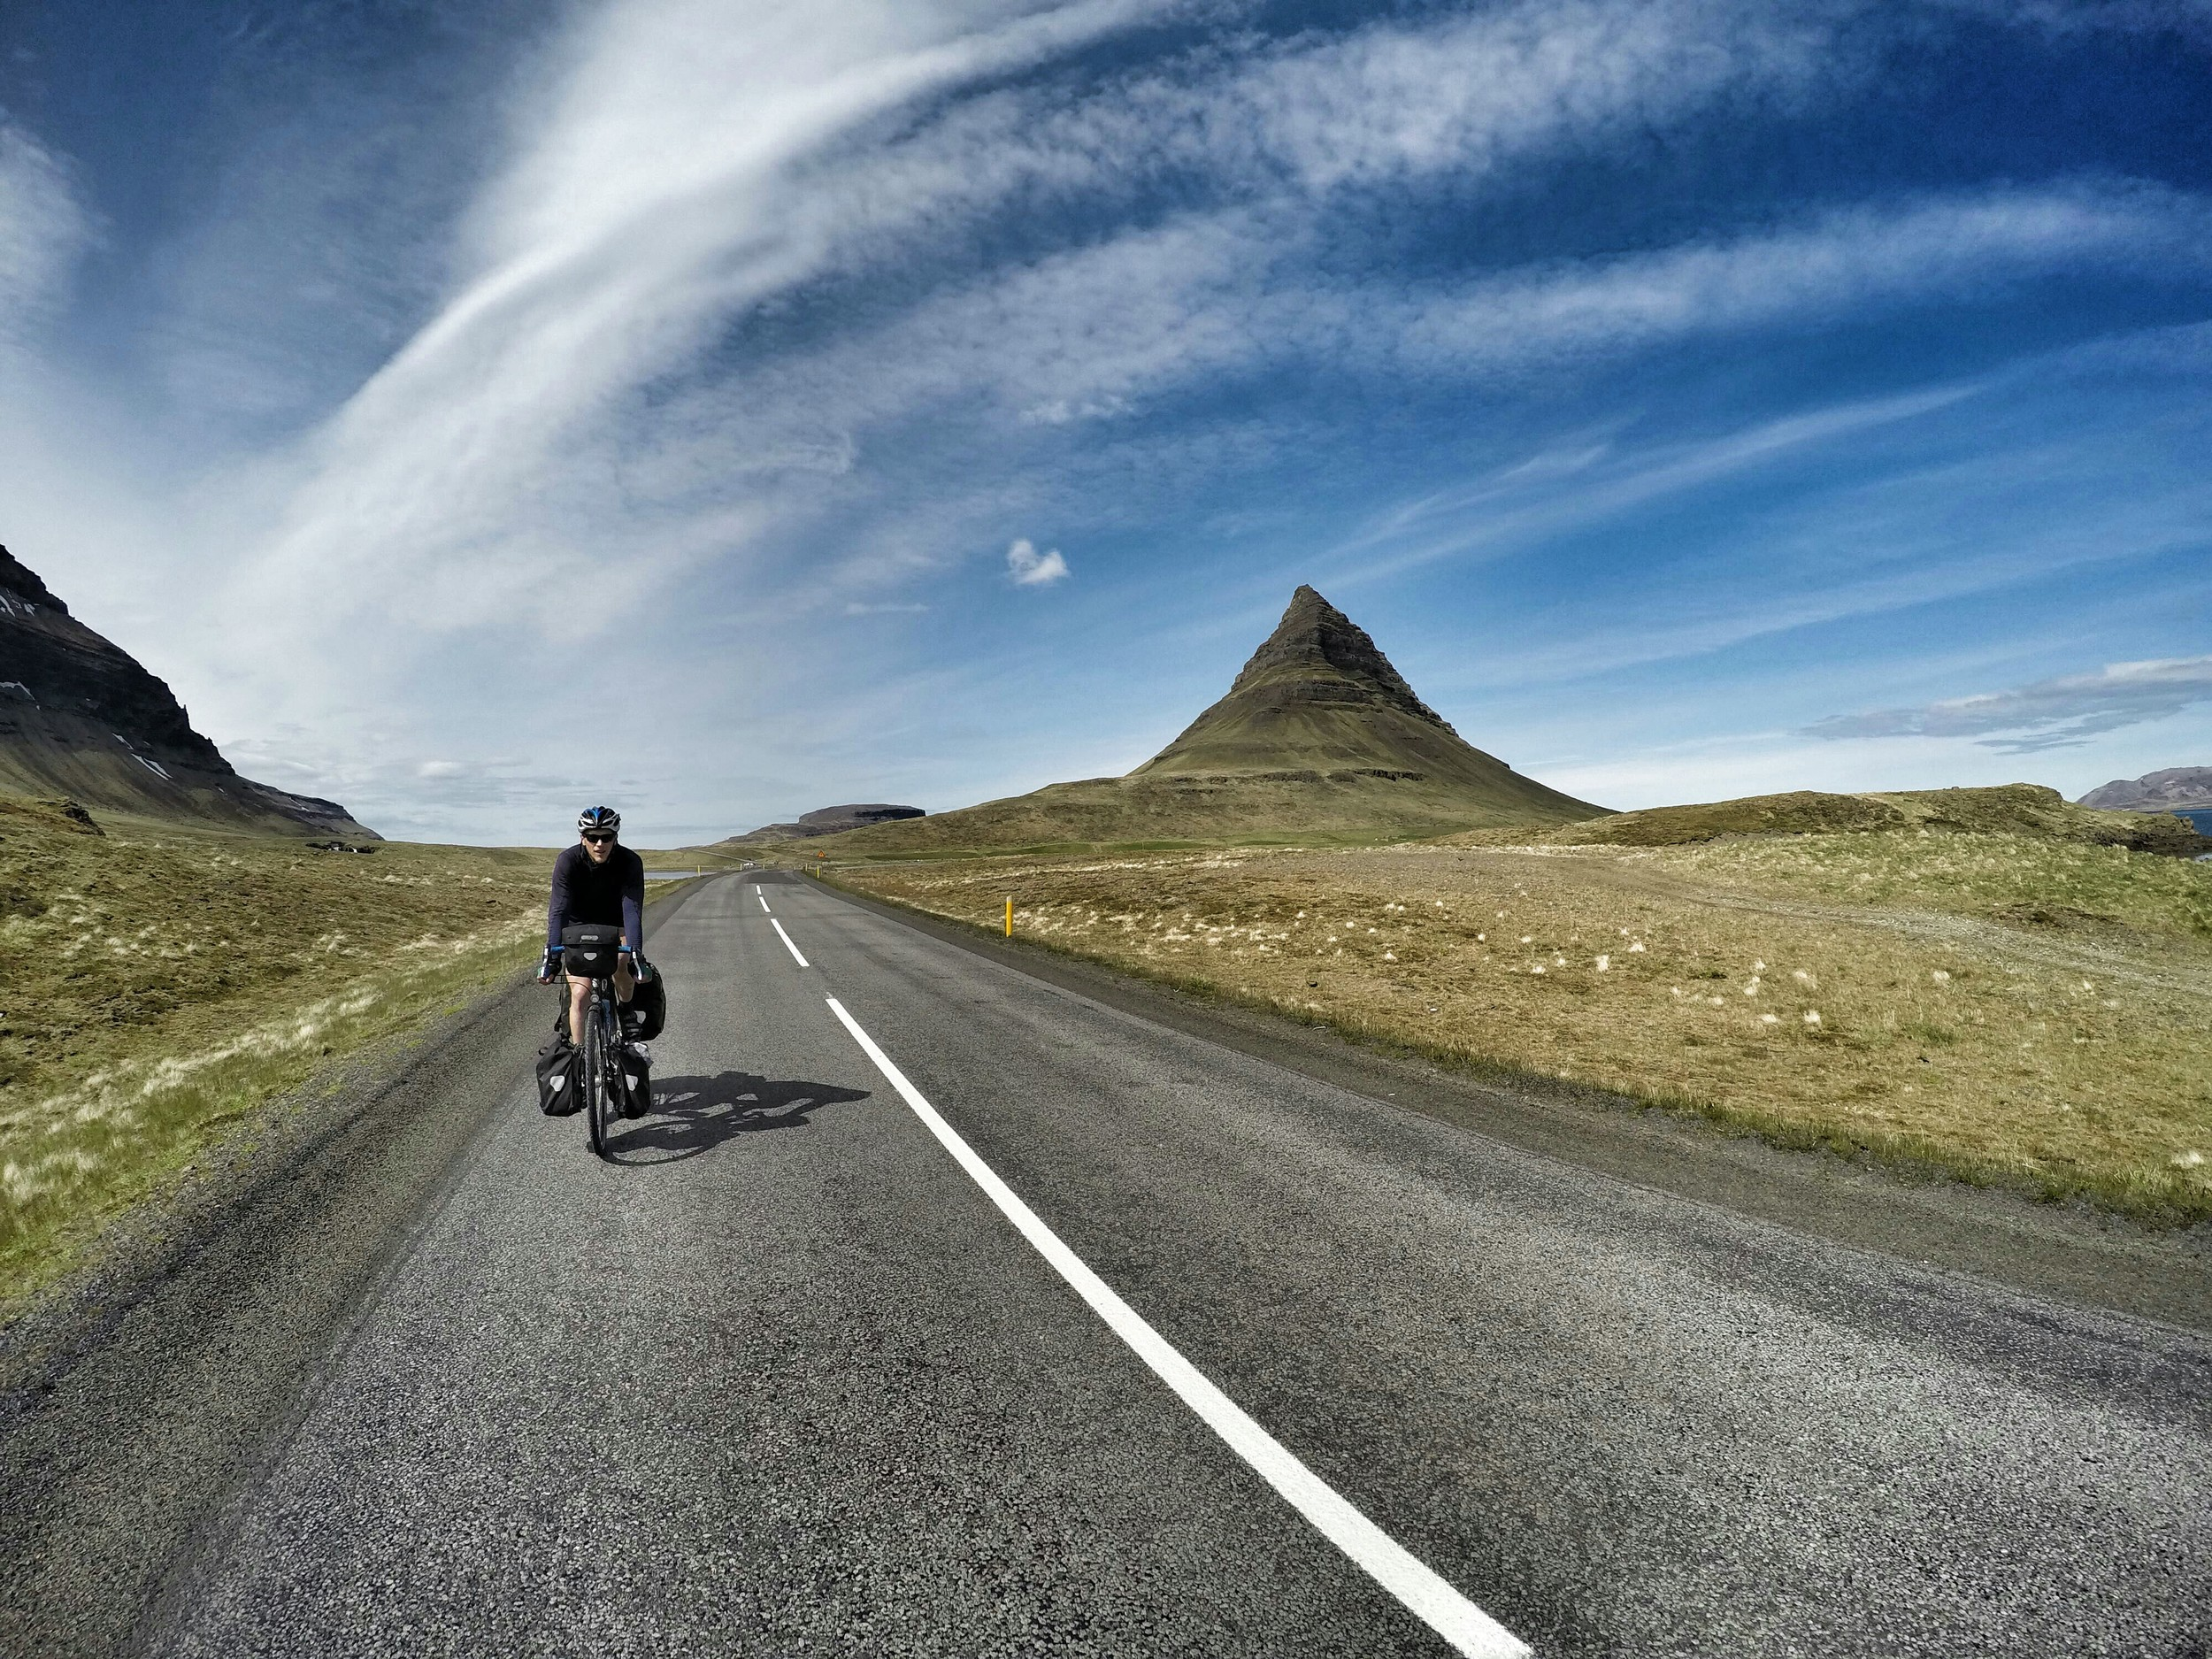 This is Jason riding by the summit of Kirkjufell. We saw this rock feature on many postcards but were slightly unimpressed relative to all the landscapes we'd seen previous. This secret to cycle travelis sometimes hard to describe. We're traveling around five times slower than motorists - we have the luxury of intimately digesting every single landscape. Unlike motorists, we aren't rushing around to see the popular sights. I love cycle travel because it delivers a full range of constant simulation. We felt Iceland's rain, sun, and wind. We smelled it's flowers, geysers, and fish factories, and we heard it's birds, sheep,and silence.